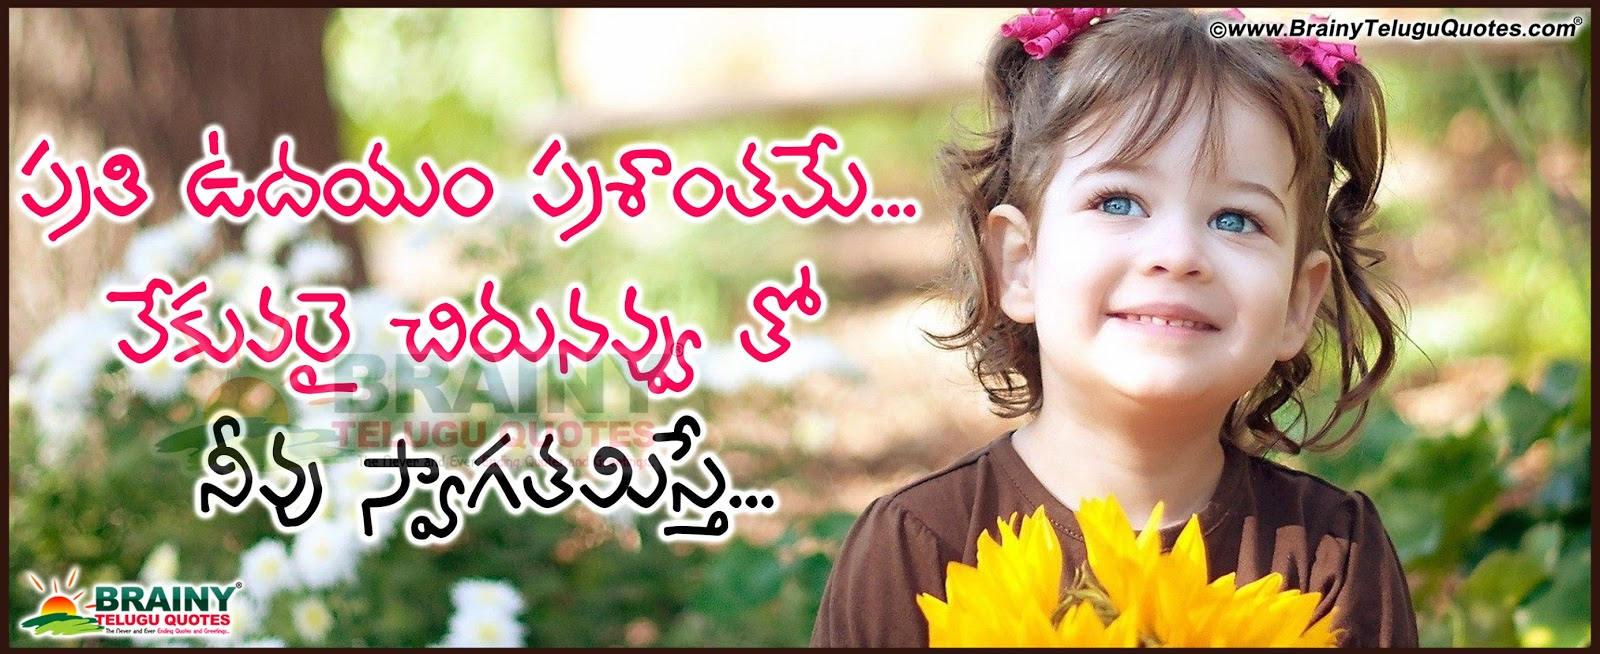 Best Telugu Quotes Reads Inspirational Quotes Images Best Smiling Quotes And Sayings In Telugu Language For